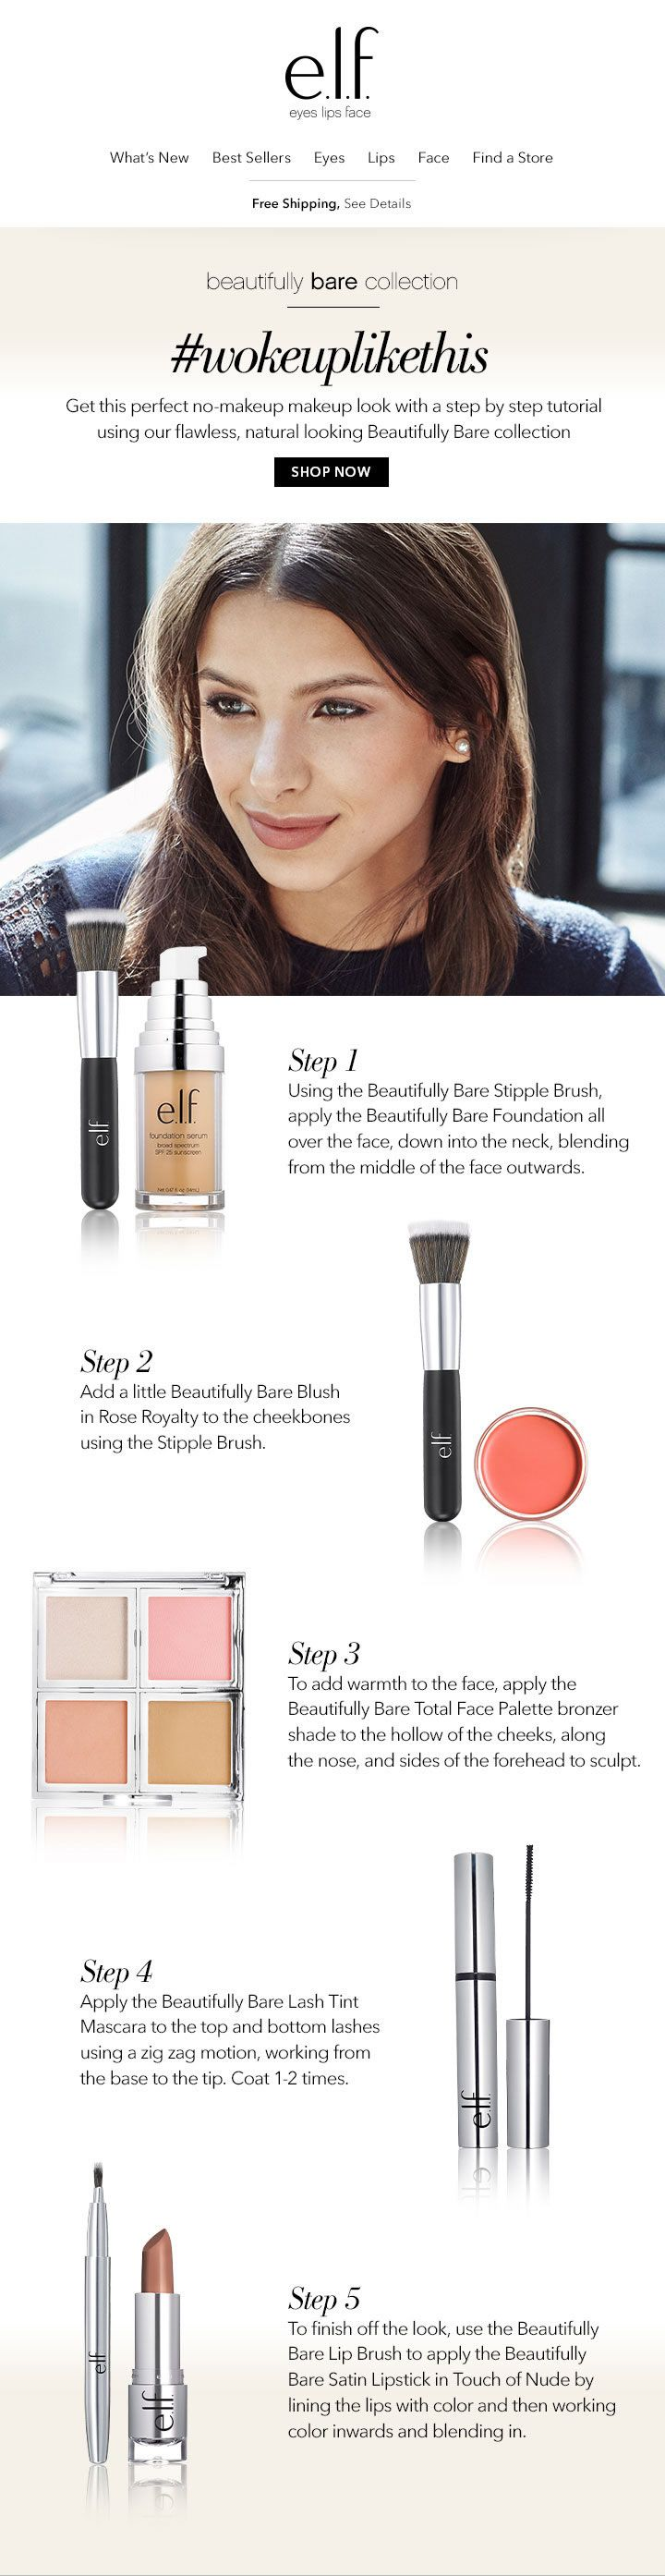 Get the perfect no-makeup makeup look with this step by step tutorial.  CLIENT: e.l.f. Cosmetics Built by: Mark Nayve   SellUp